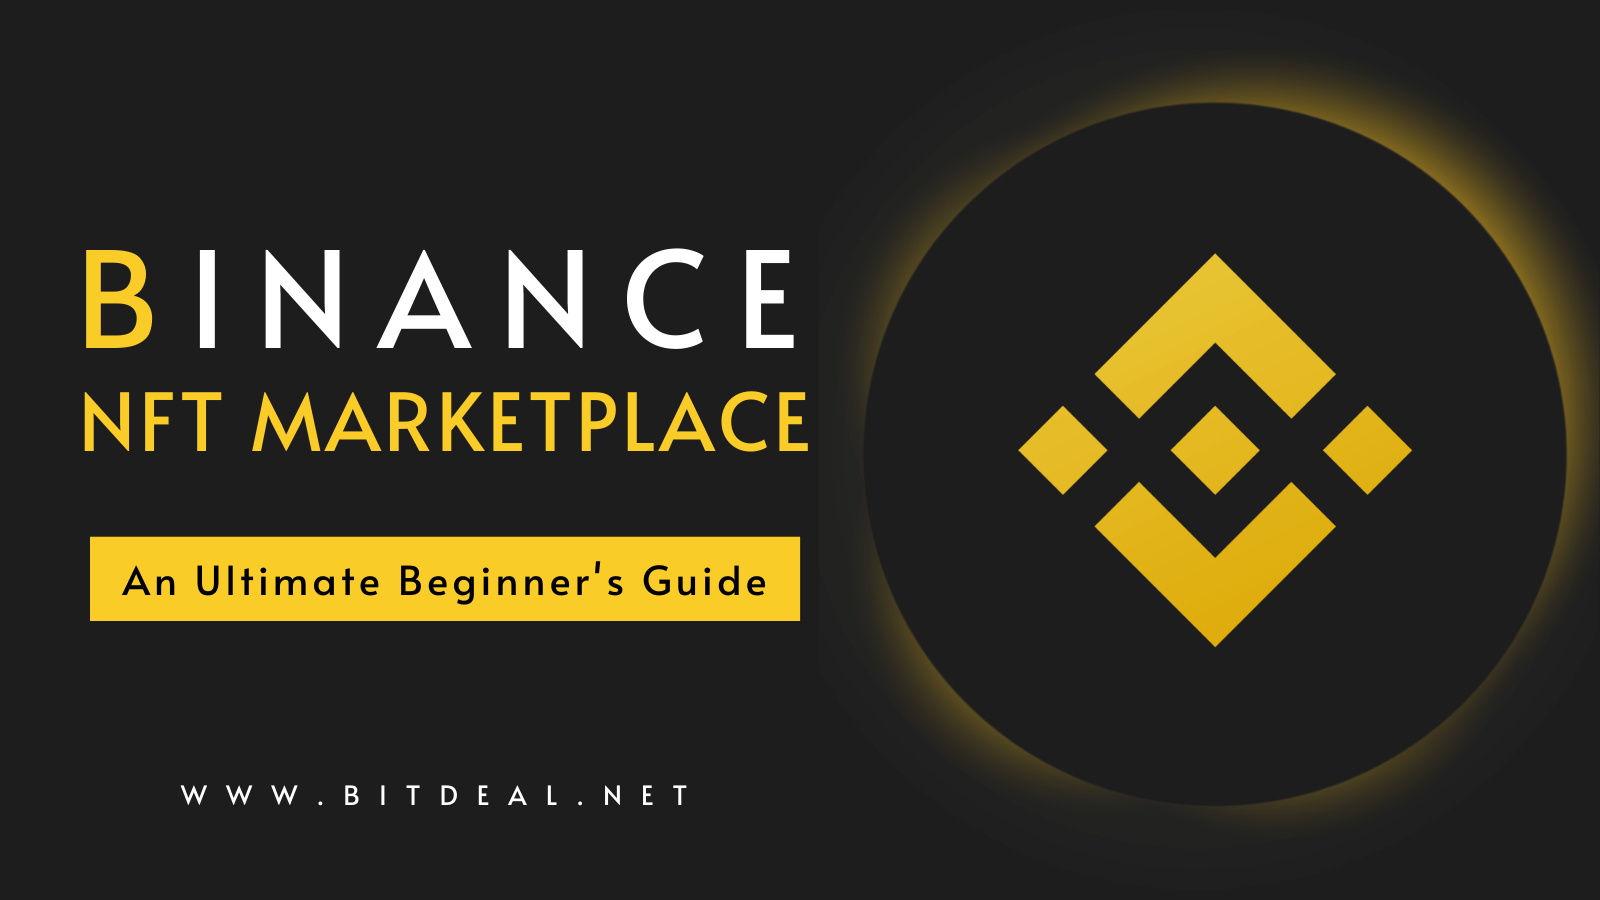 Binance NFT Marketplace - Everything you need to know about this Epic platform